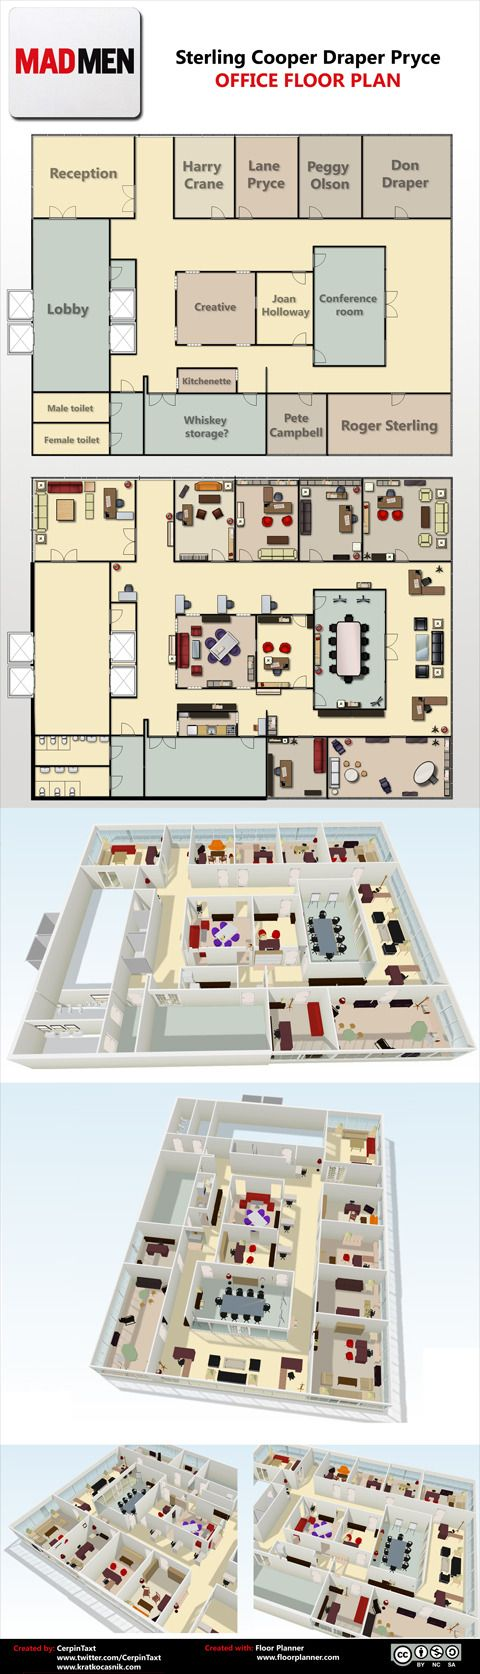 The SCP floorplan as of season 4. The second floor was added the following season.